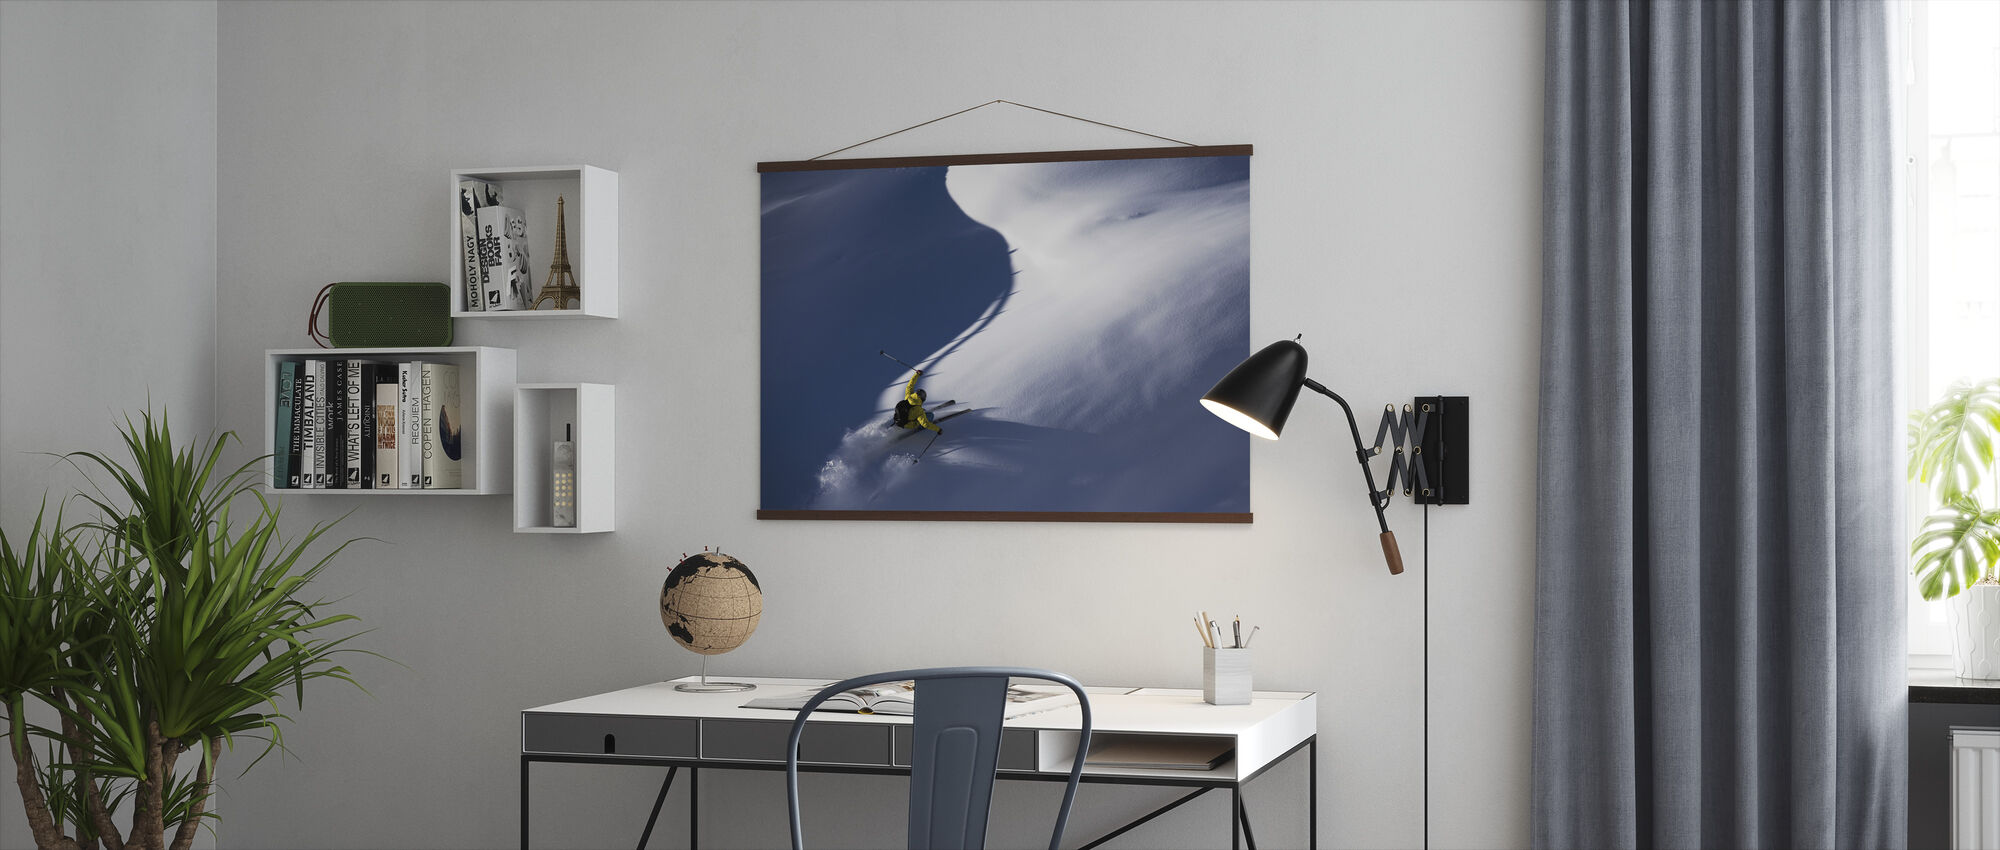 Powder Snow Skiing - Poster - Office